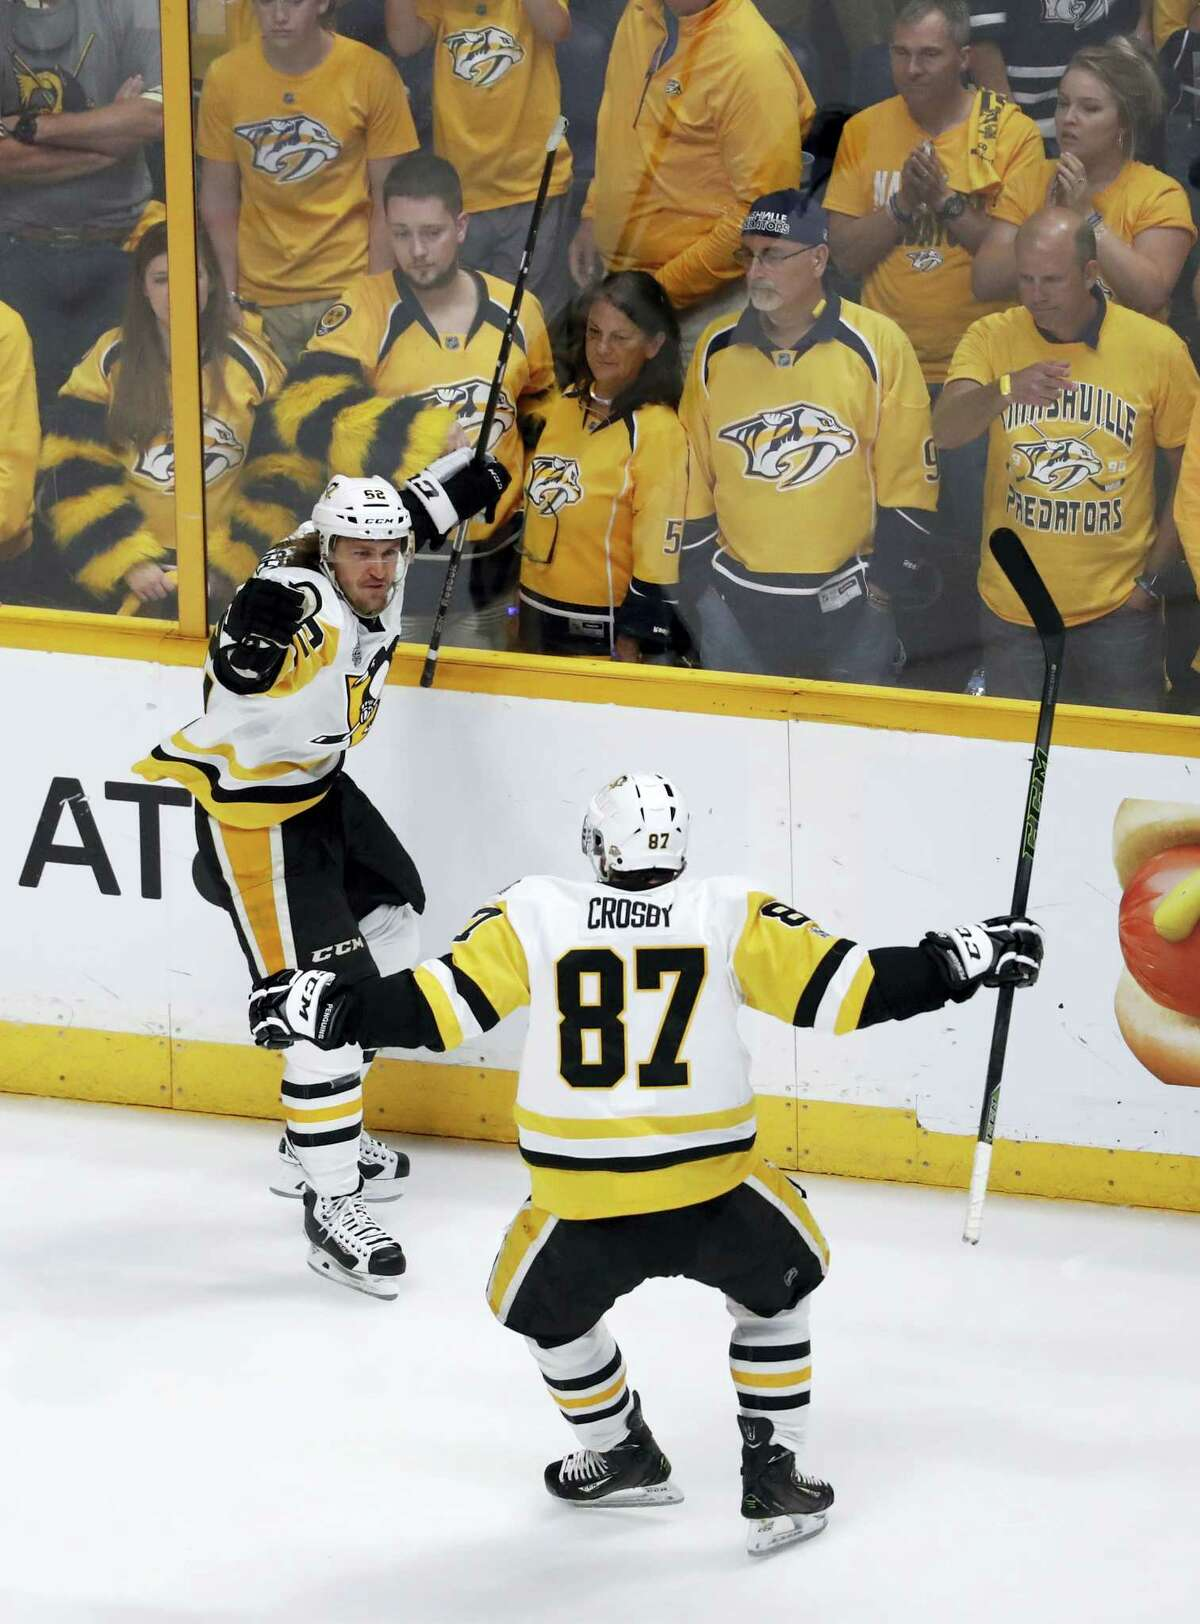 Pittsburgh Penguins' Carl Hagelin (62), of Sweden, celebrates with Sidney Crosby (87) after scoring a goal against the Nashville Predators during the third period of Game 6 of the NHL hockey Stanley Cup Final, Sunday in Nashville, Tenn.